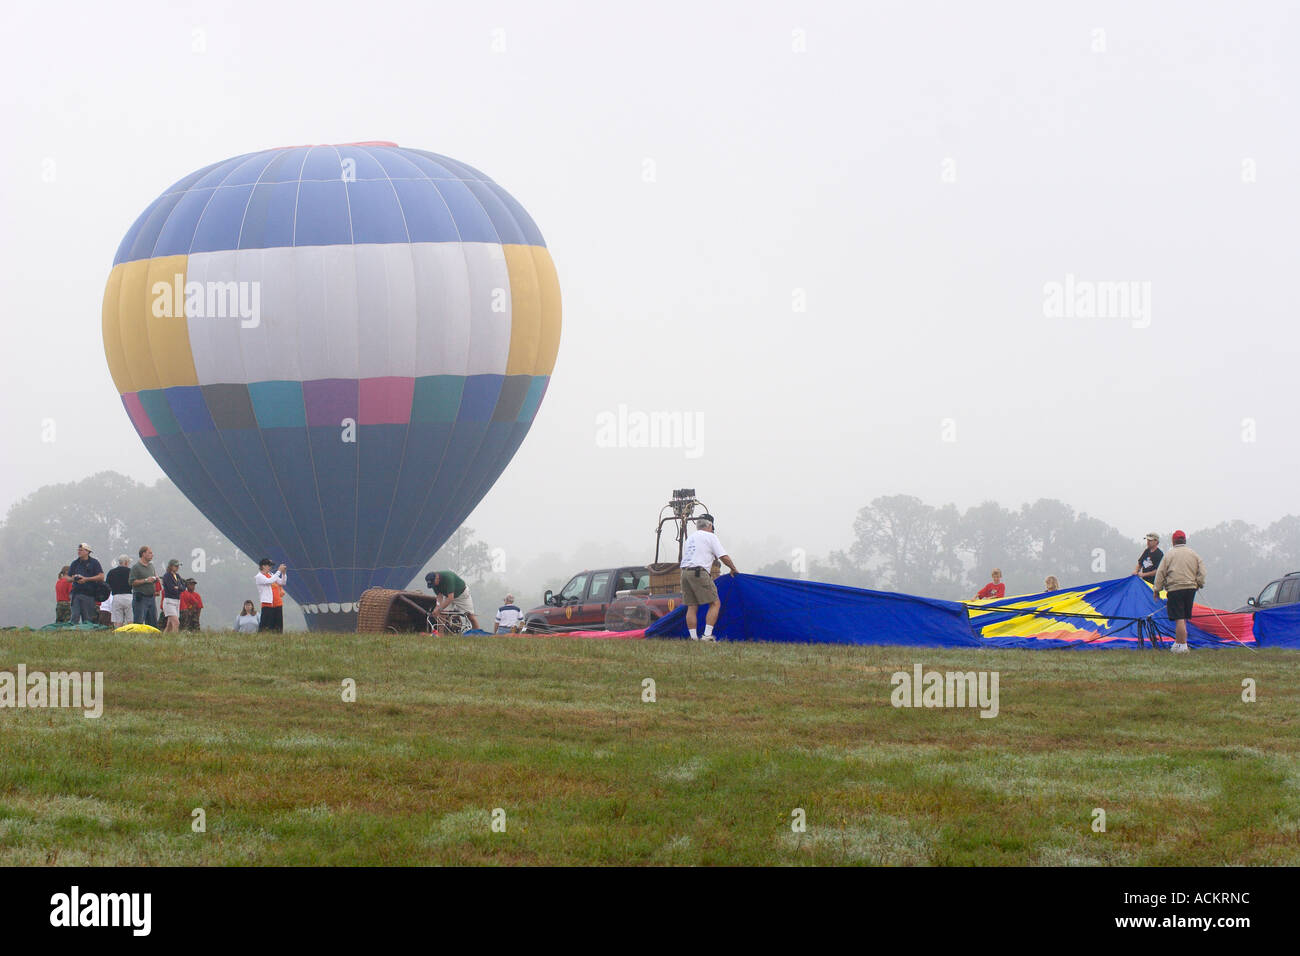 Hot air balloons prepare for lift off at balloon festival in Dunnellon, Florida, USA Stock Photo